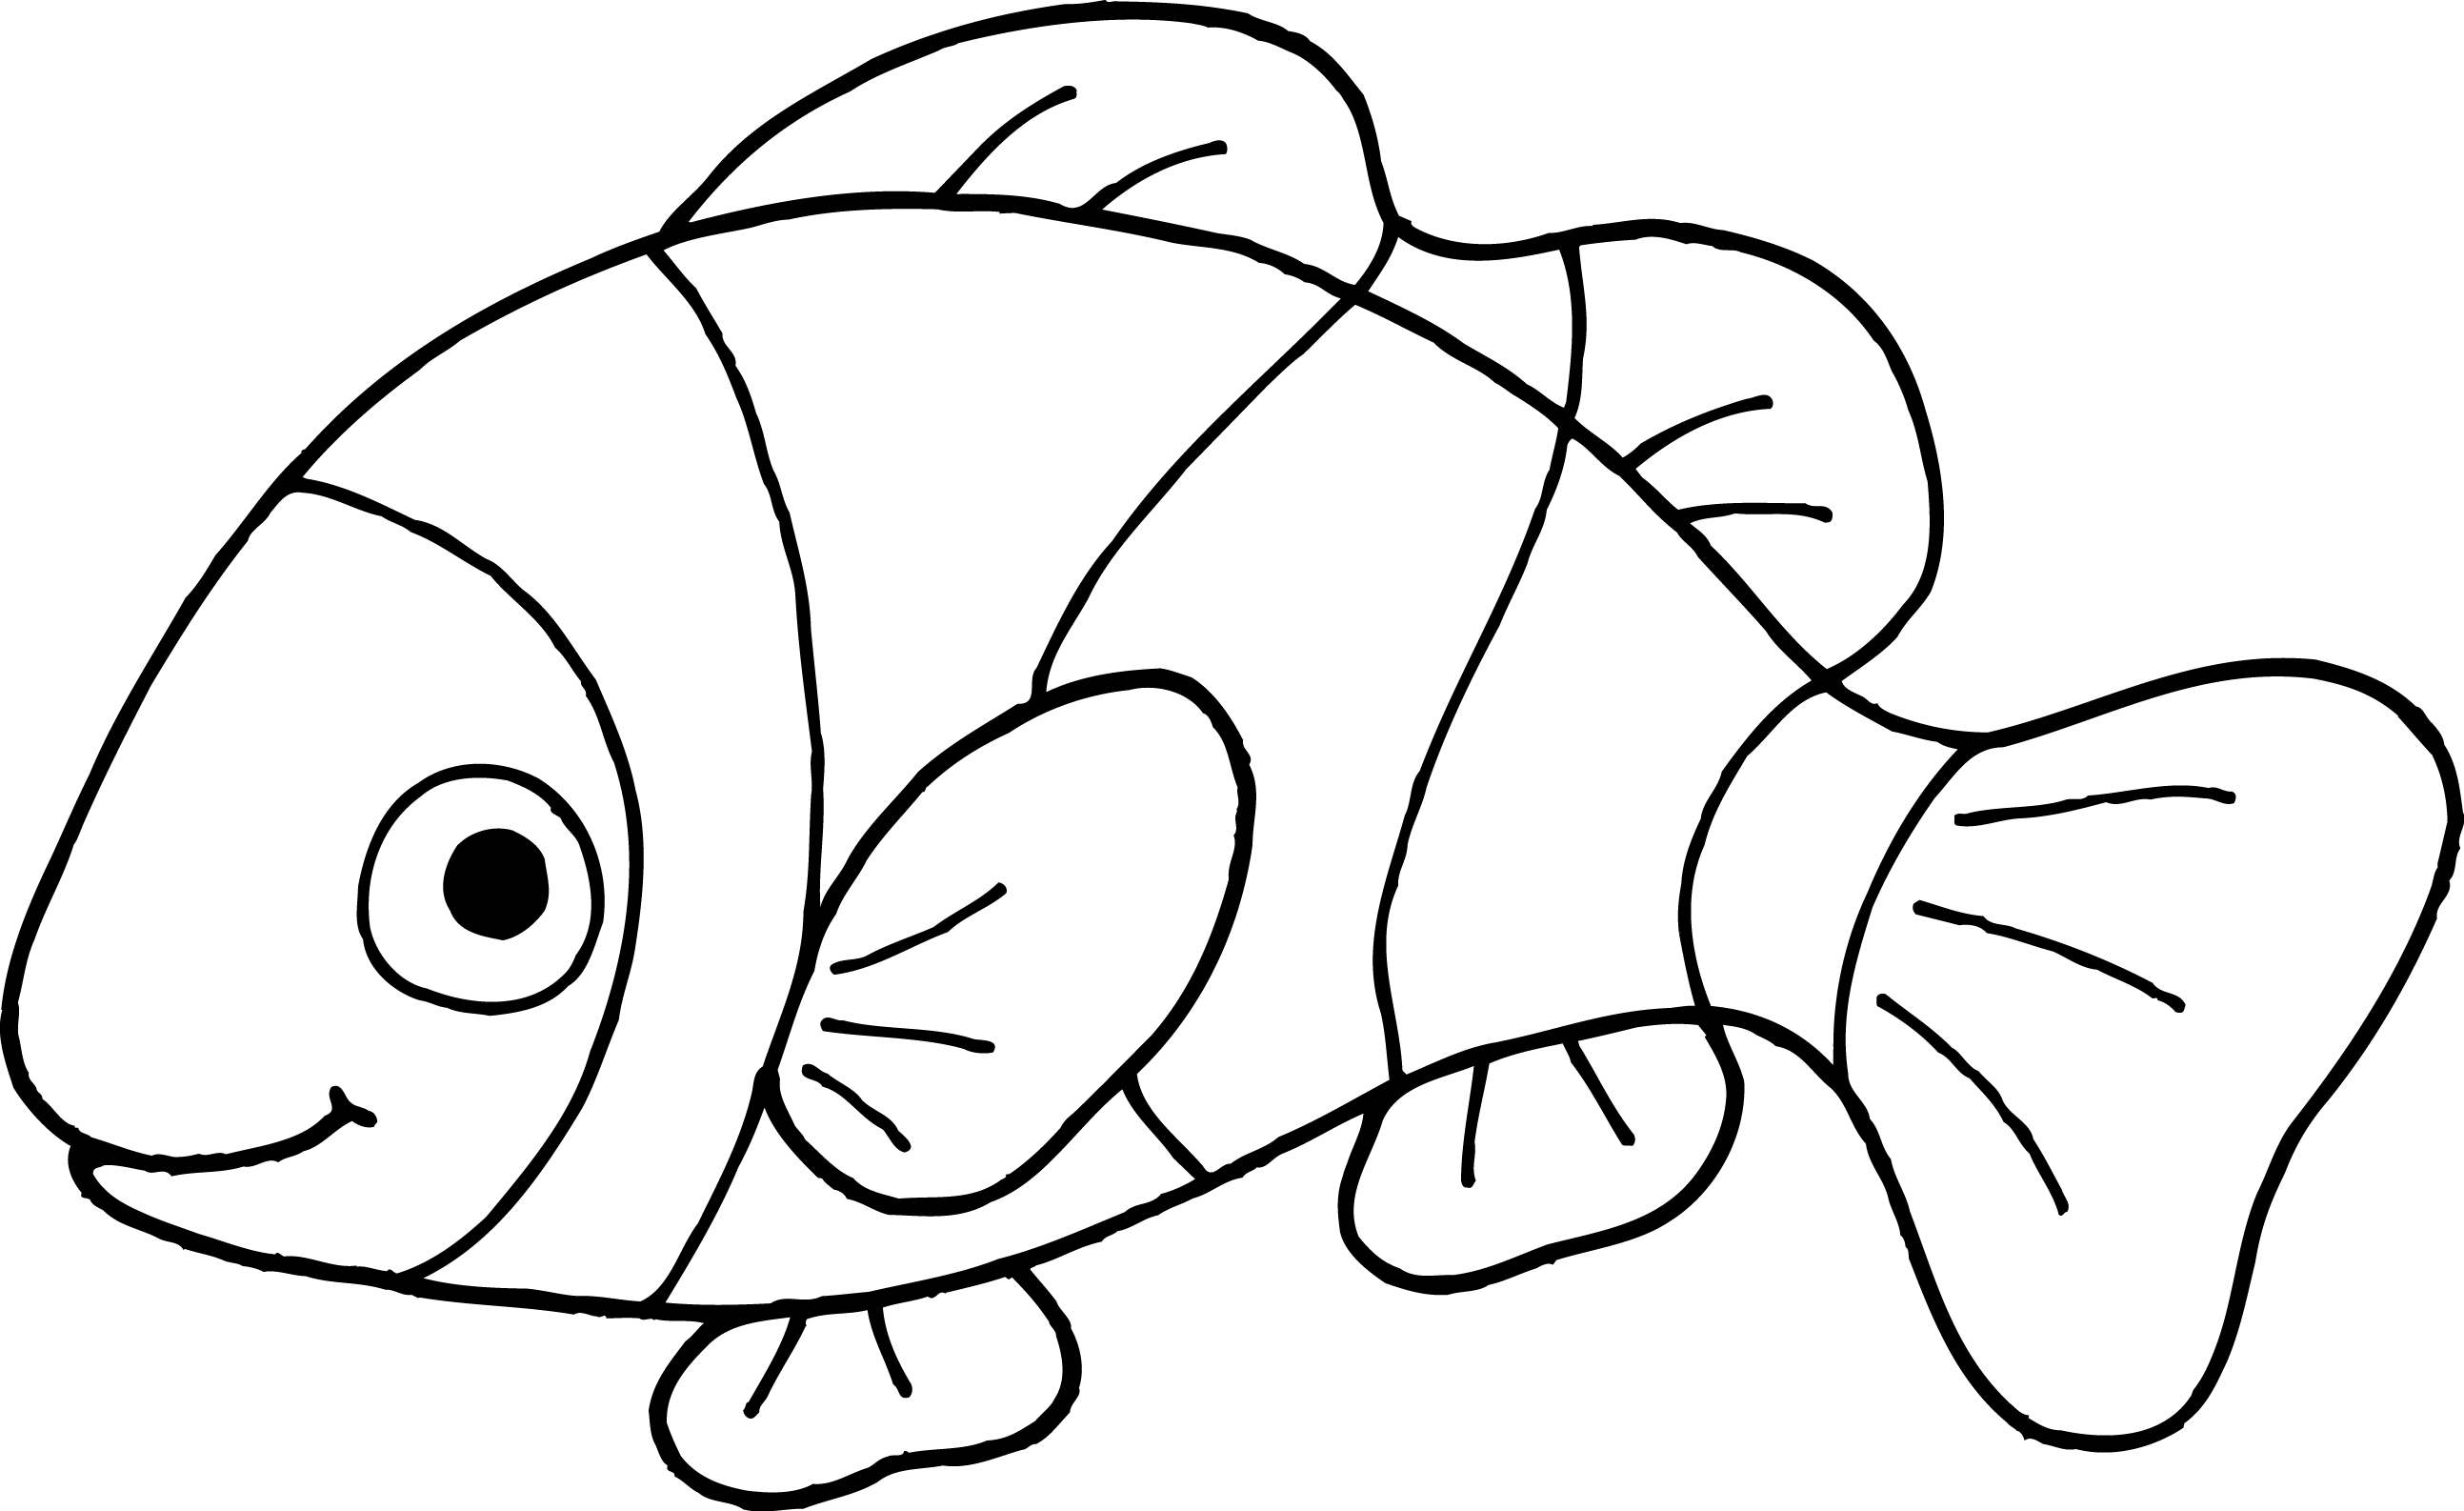 Nemo clipart black and white, Nemo black and white.